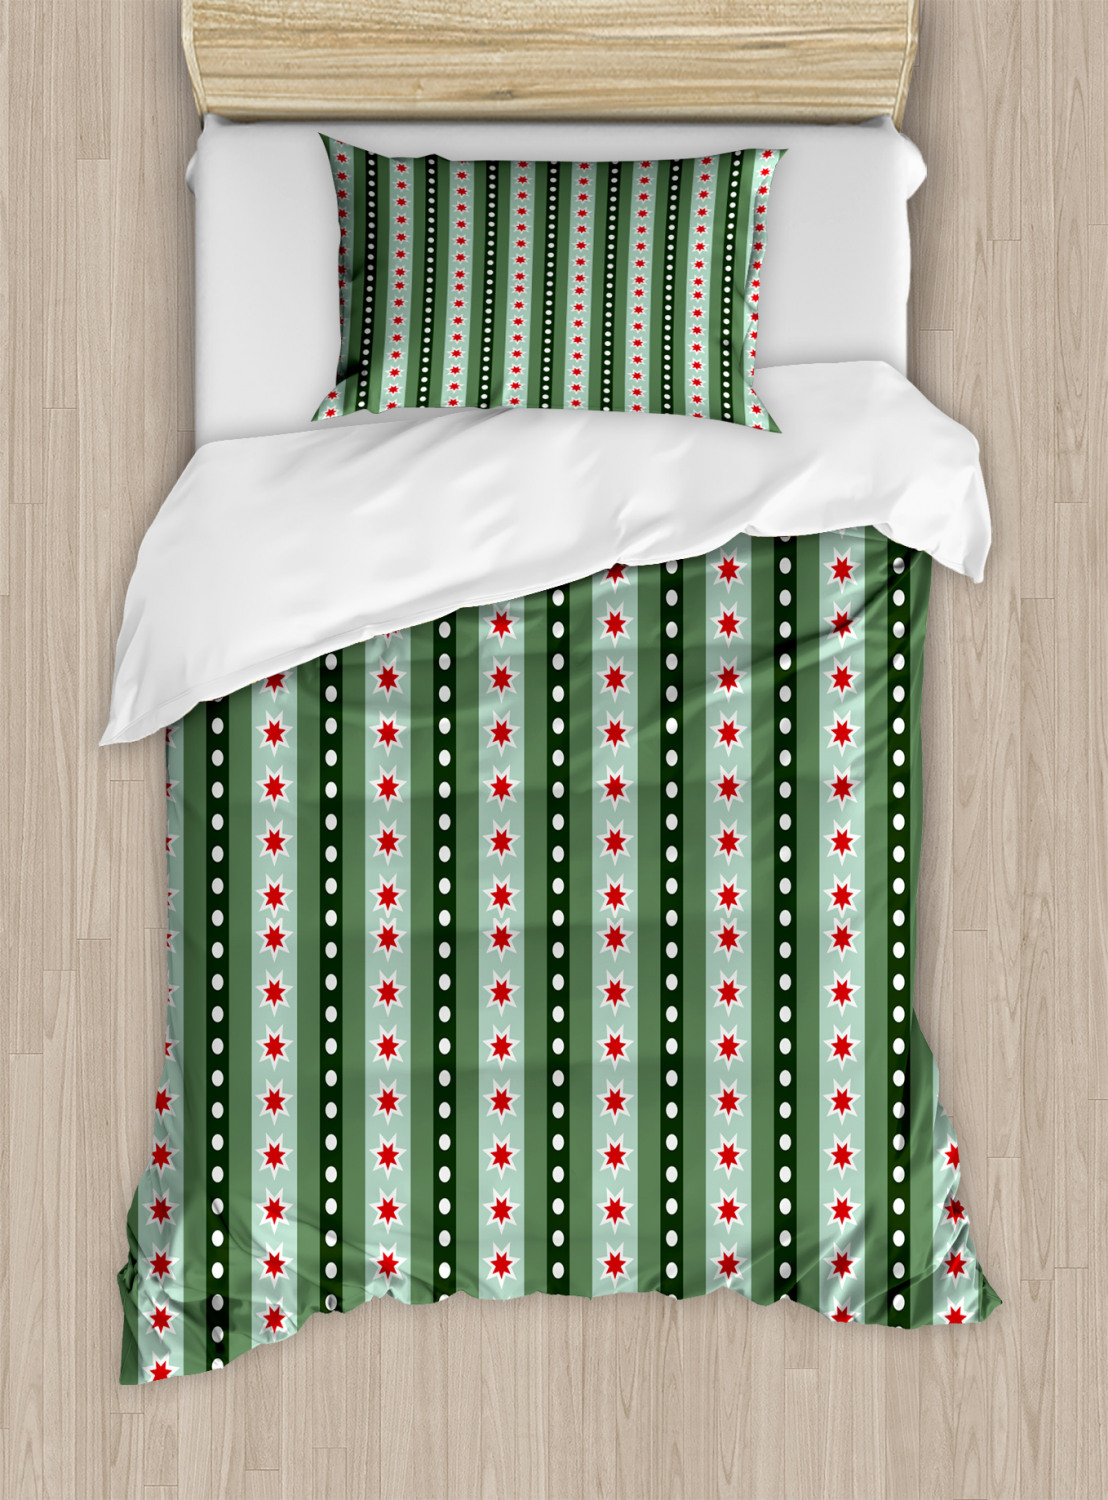 Geometric Christmas Duvet Cover Set Twin Queen King Sizes with Pillow Shams